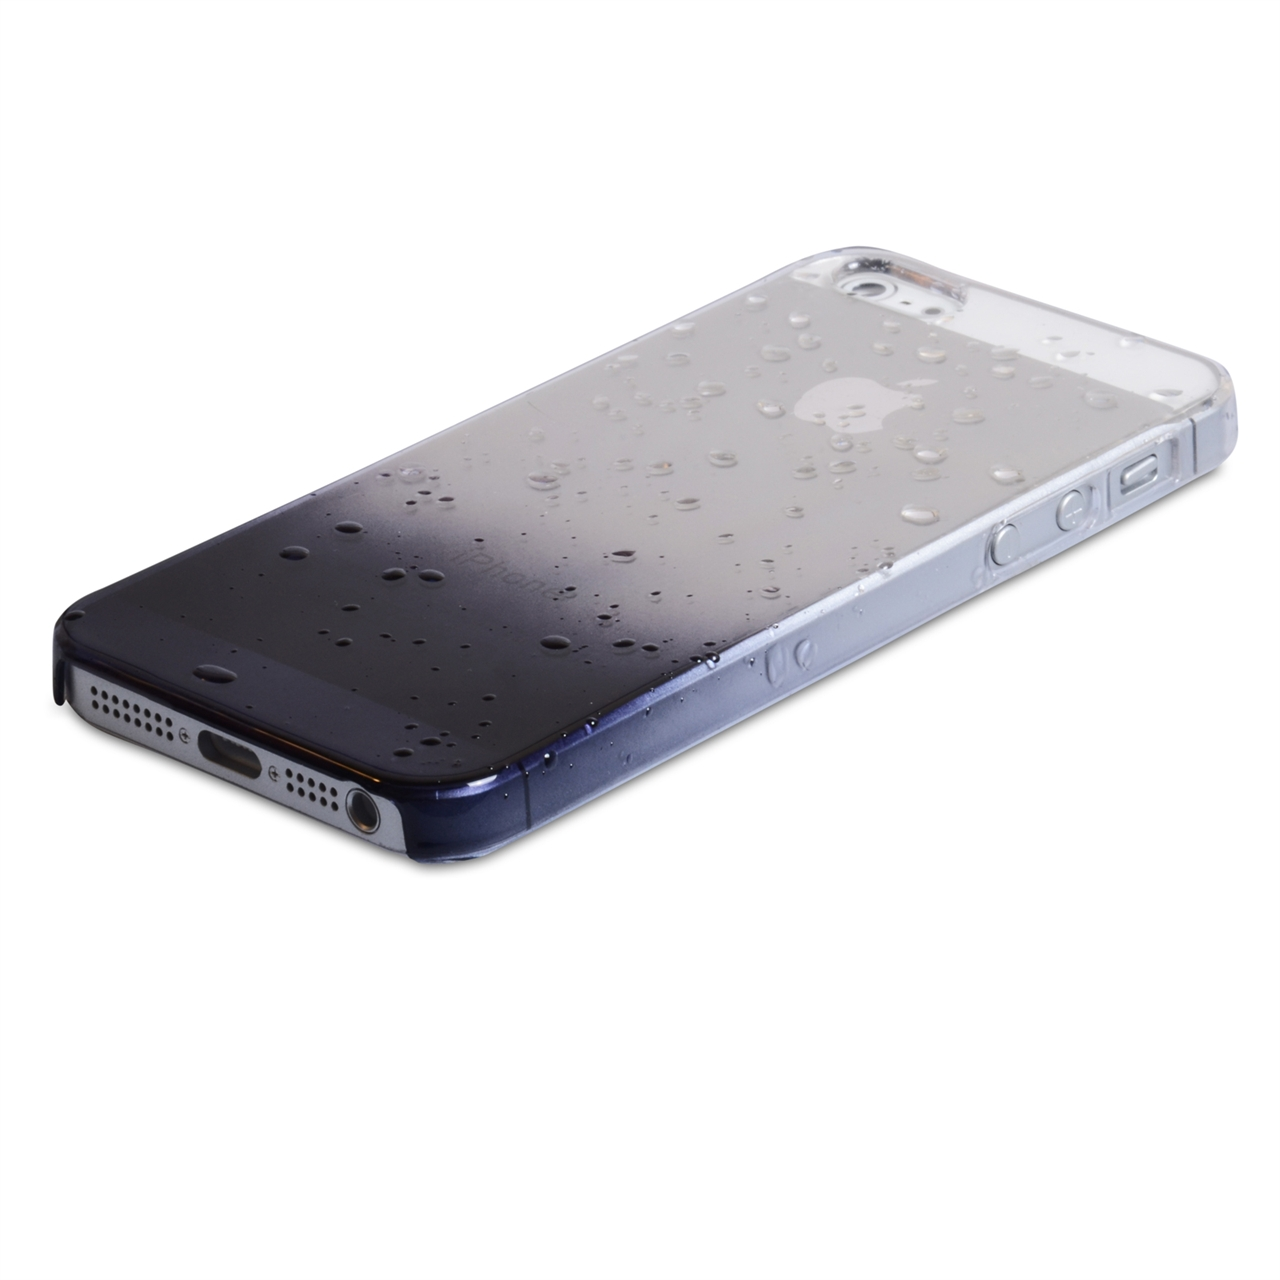 YouSave Accessories iPhone 5 / 5S Raindrop Hard Case - Black